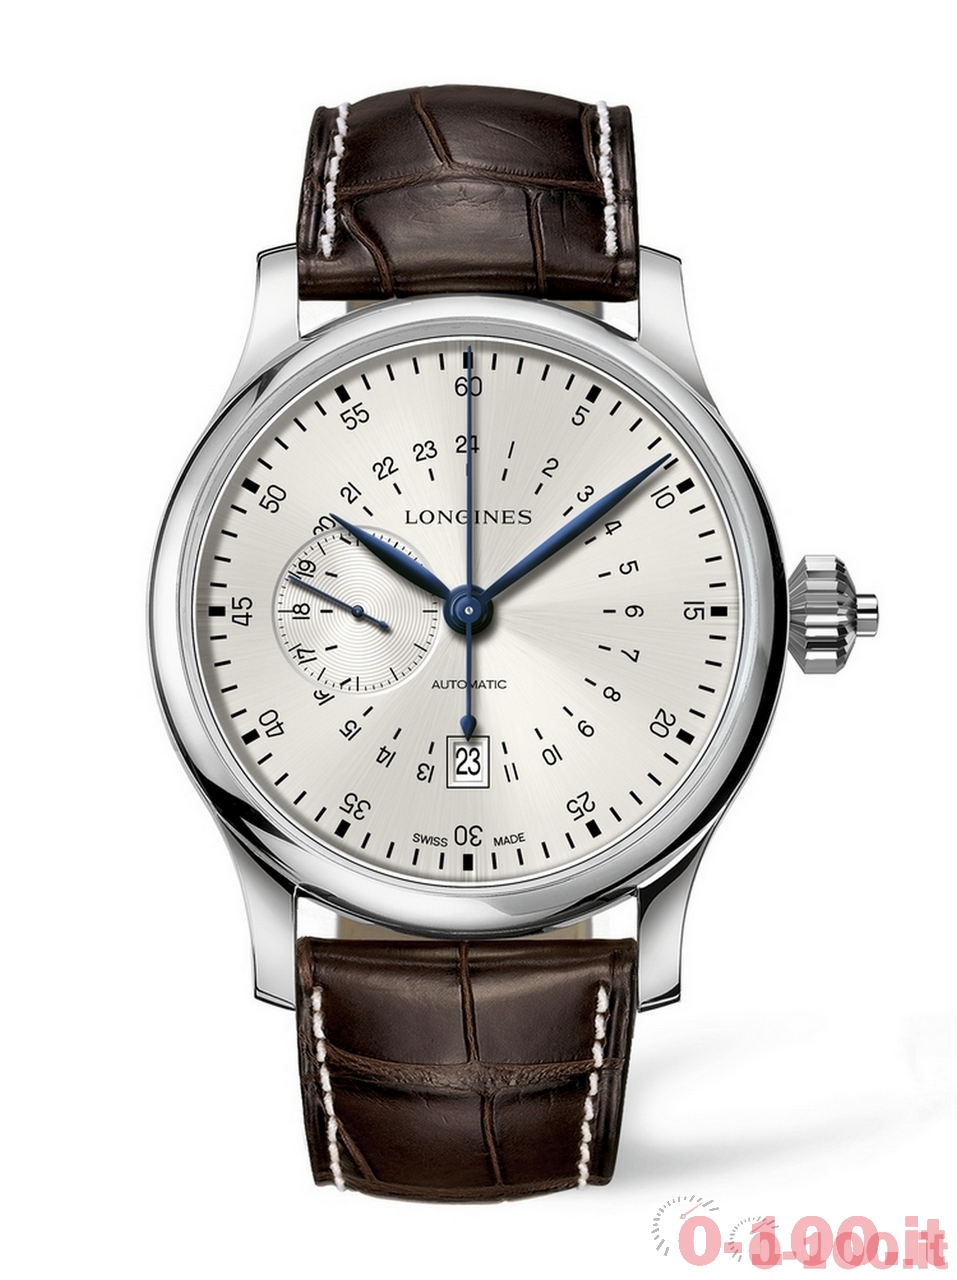 longines-twenty-four-hours-single-push-piece-chronograph-prezzo-price-0-100_2